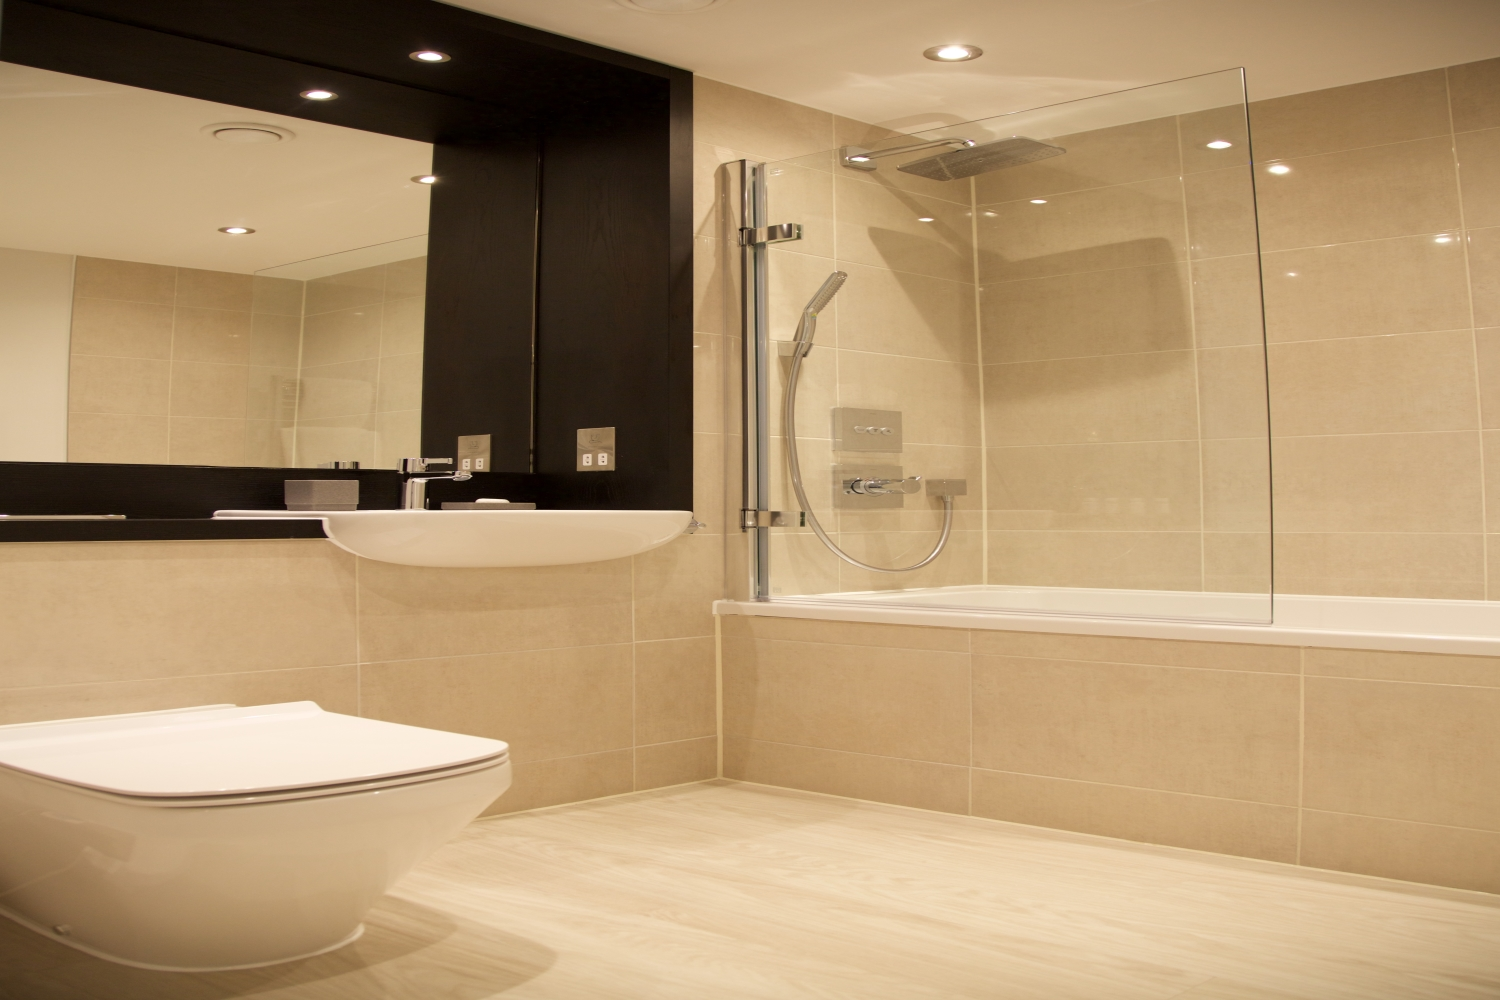 Vesta serviced apartments citystay cambridge - 3 bedroom apartments in cambridge ma ...